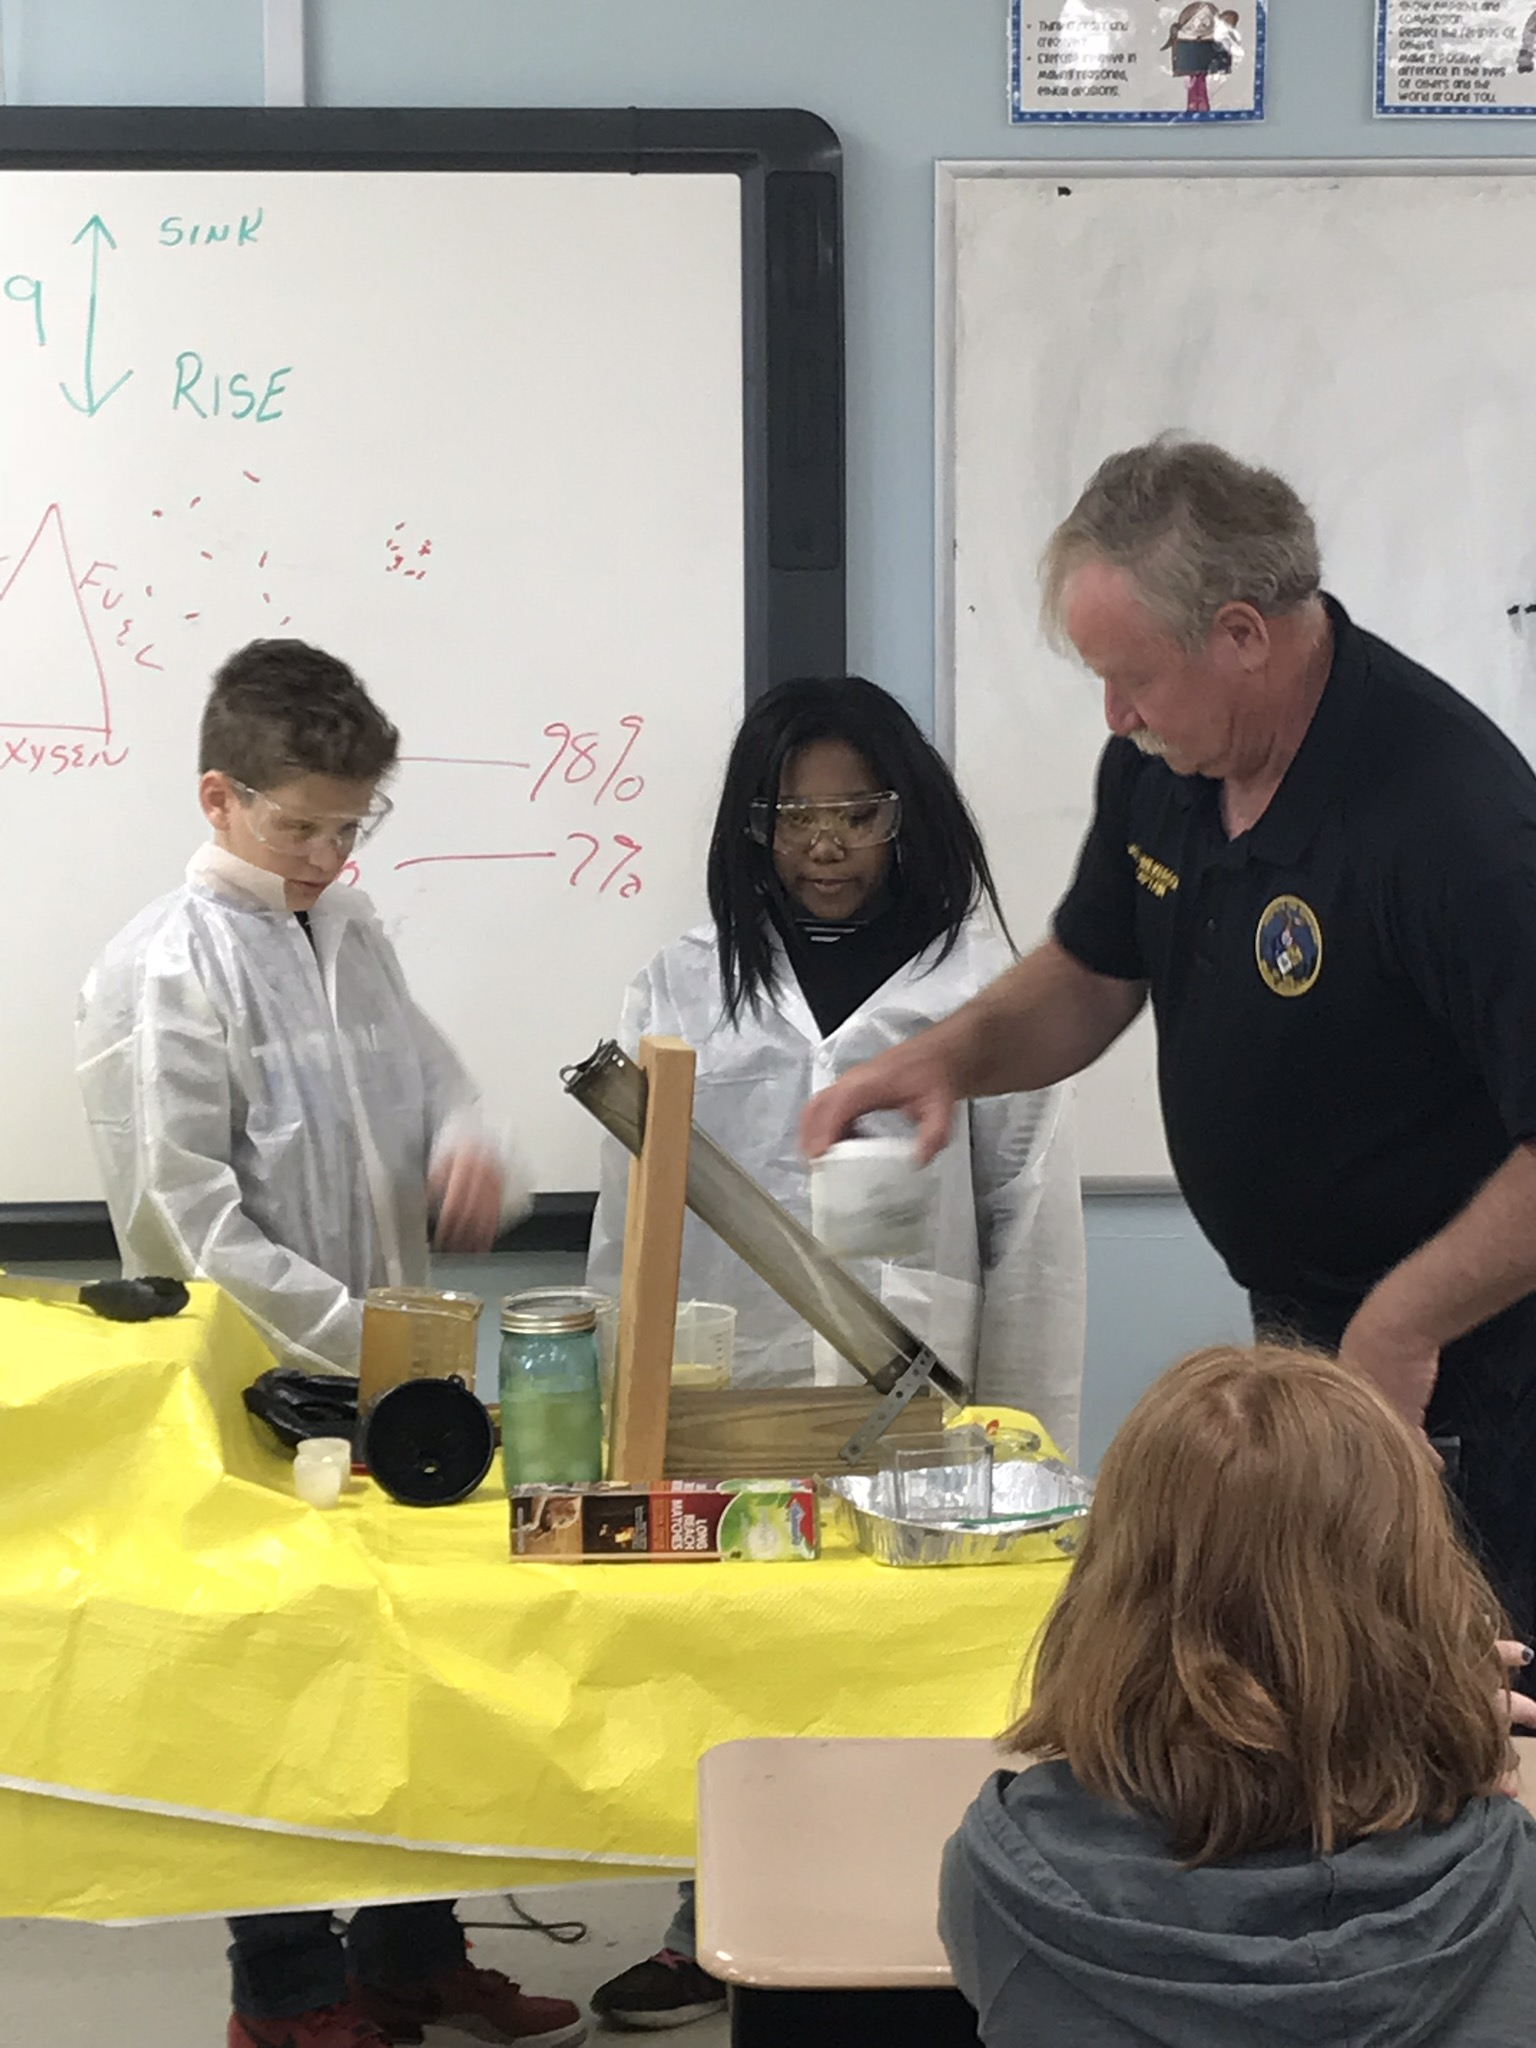 Fire Department Leads Students Through Real-World Science Experiments